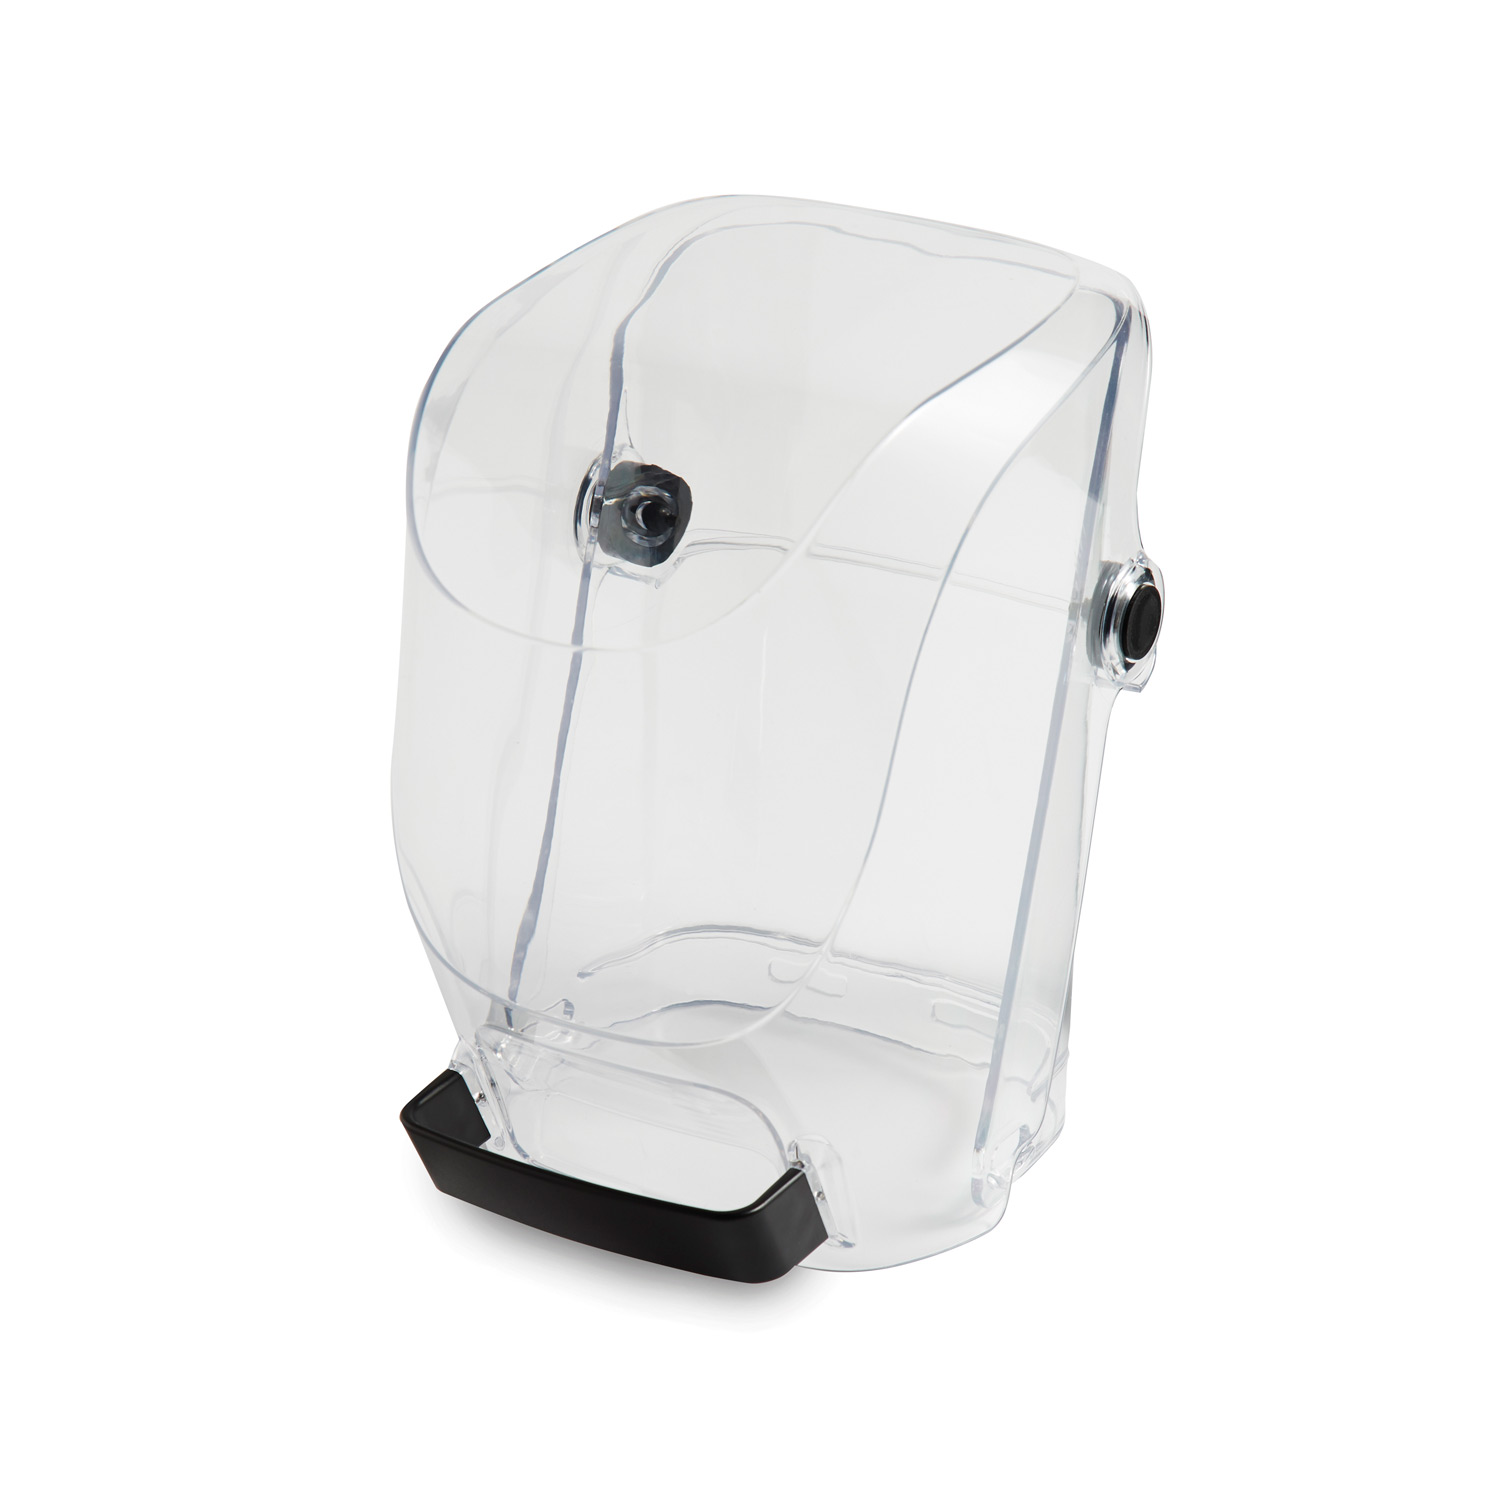 53602 Sound Shield 950 with two-piece sound shield that is hinged for easy access to the blender and removes for cleaning.